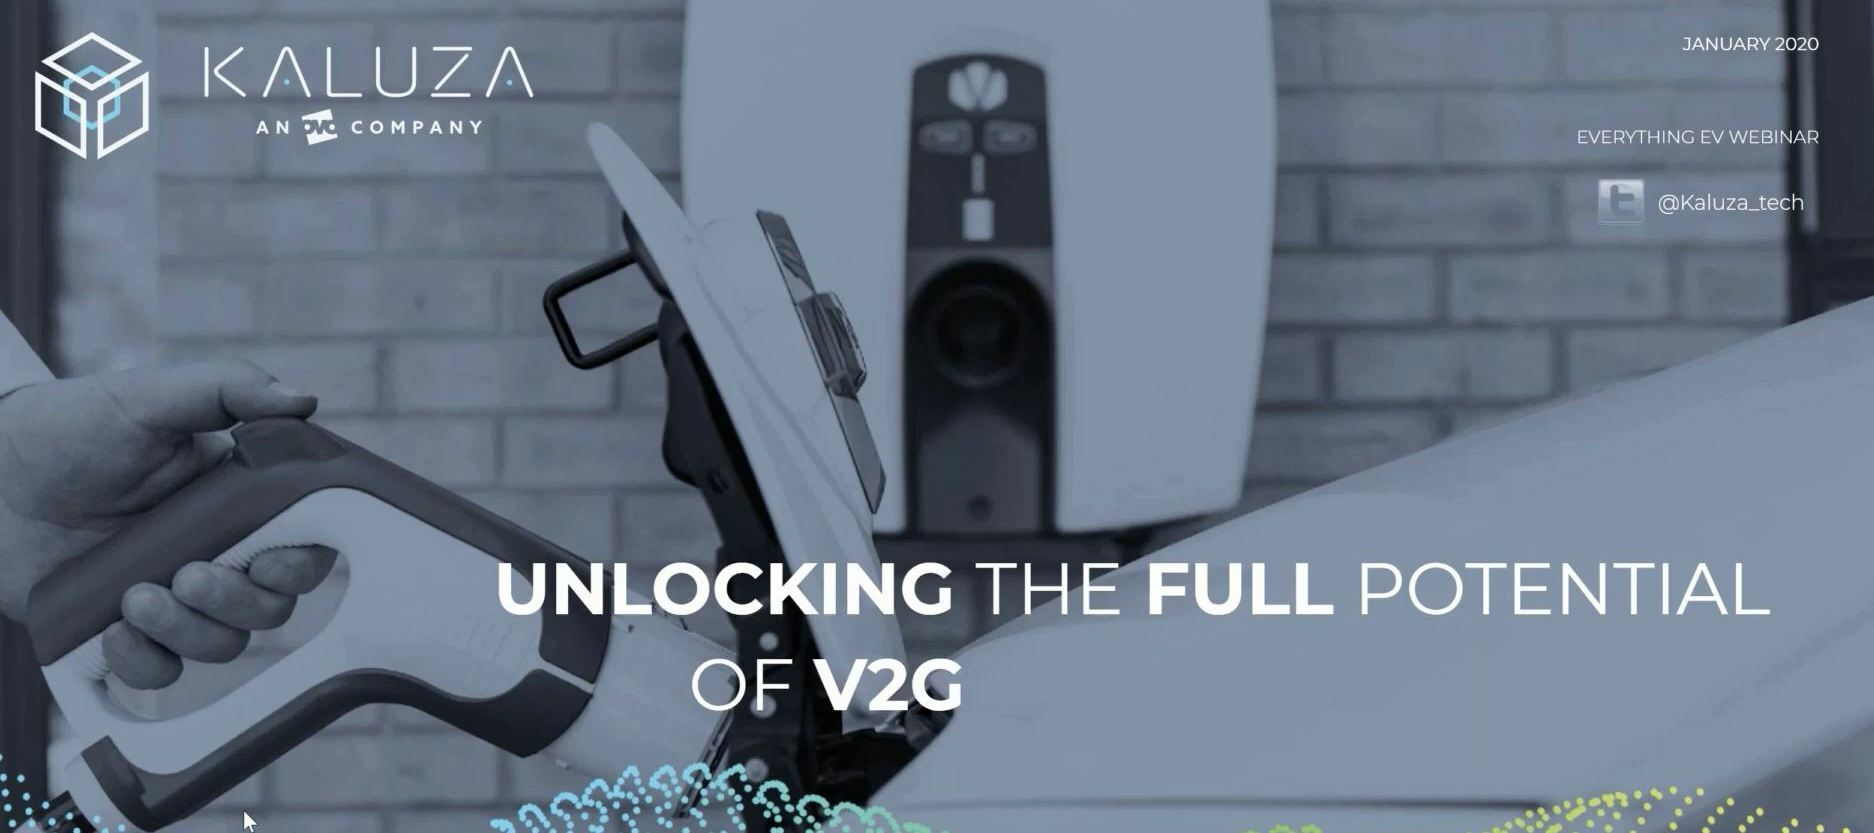 Everything EV webinar - Unlocking the full potential of Vehicle to Grid (V2G)!